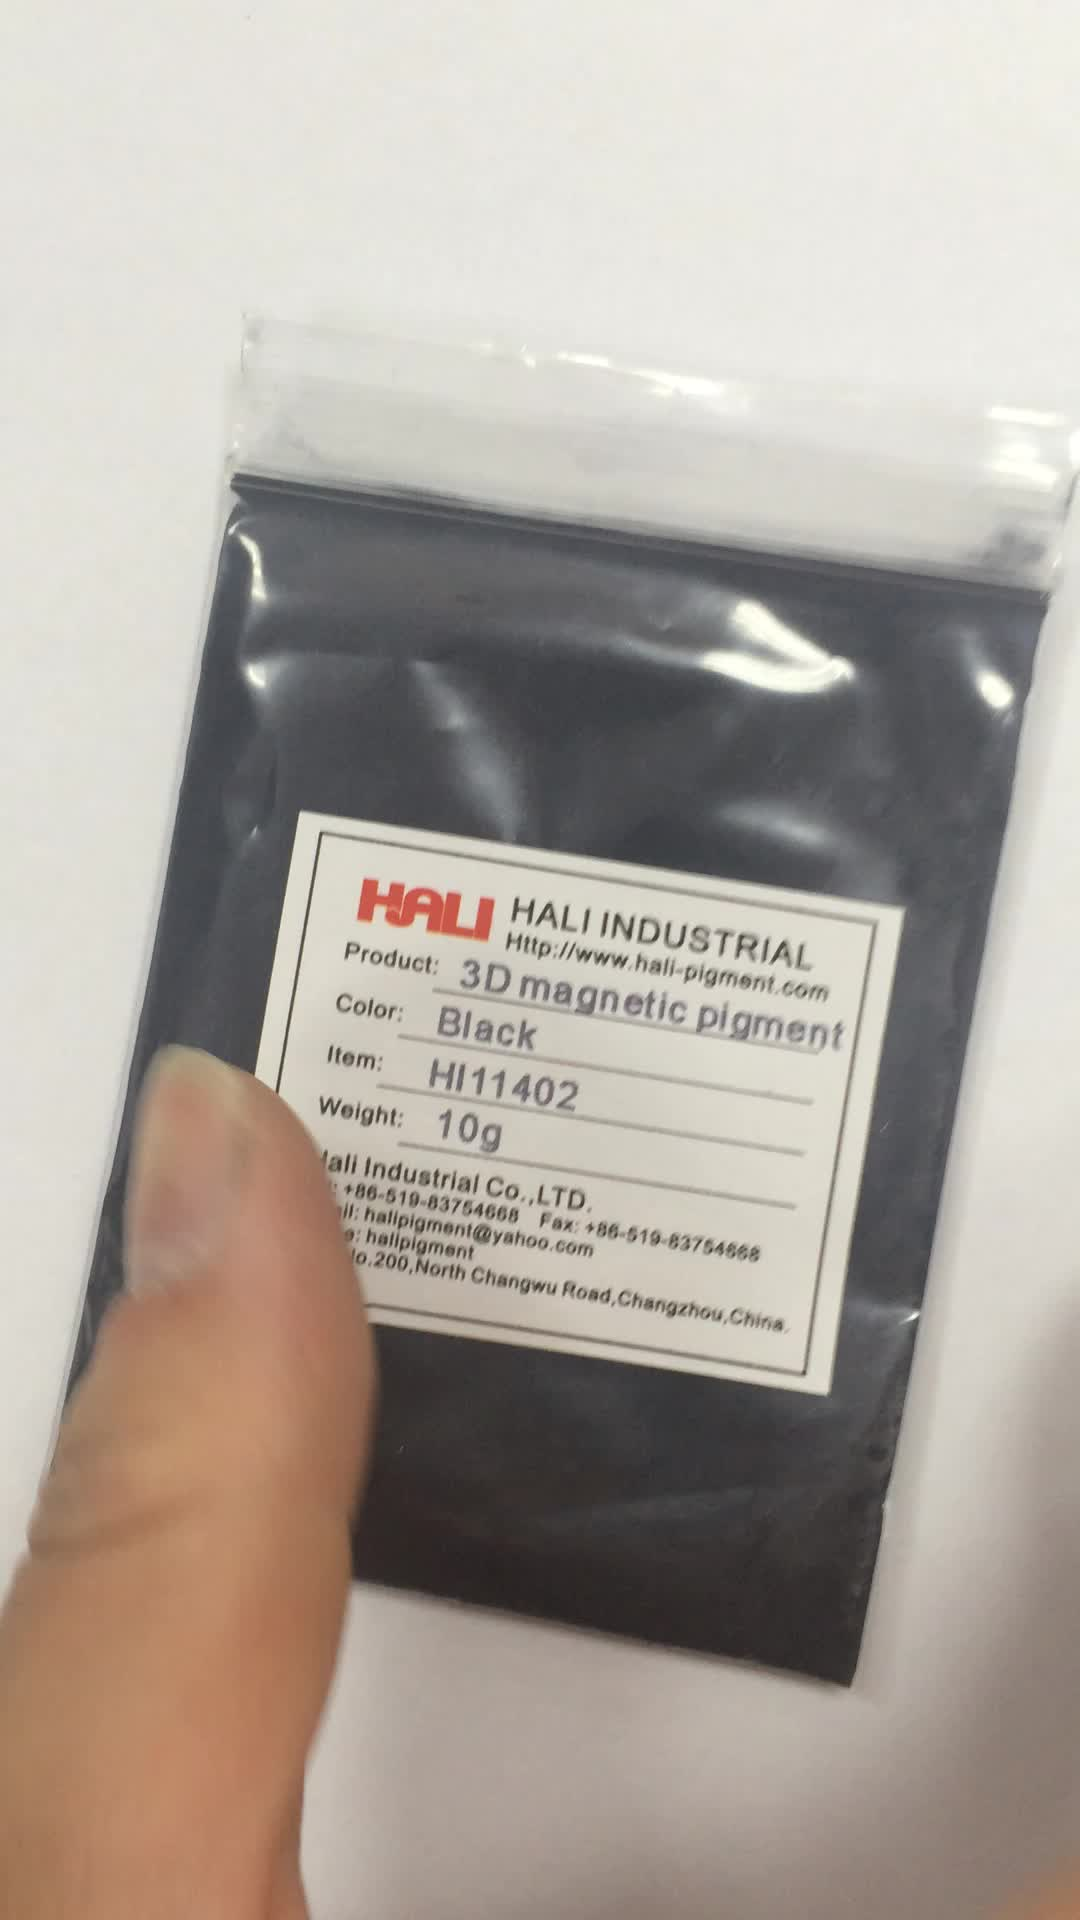 3D magnetic pigment,three-dimensional powder,stereoscopic effect,item:HL11402,color:black